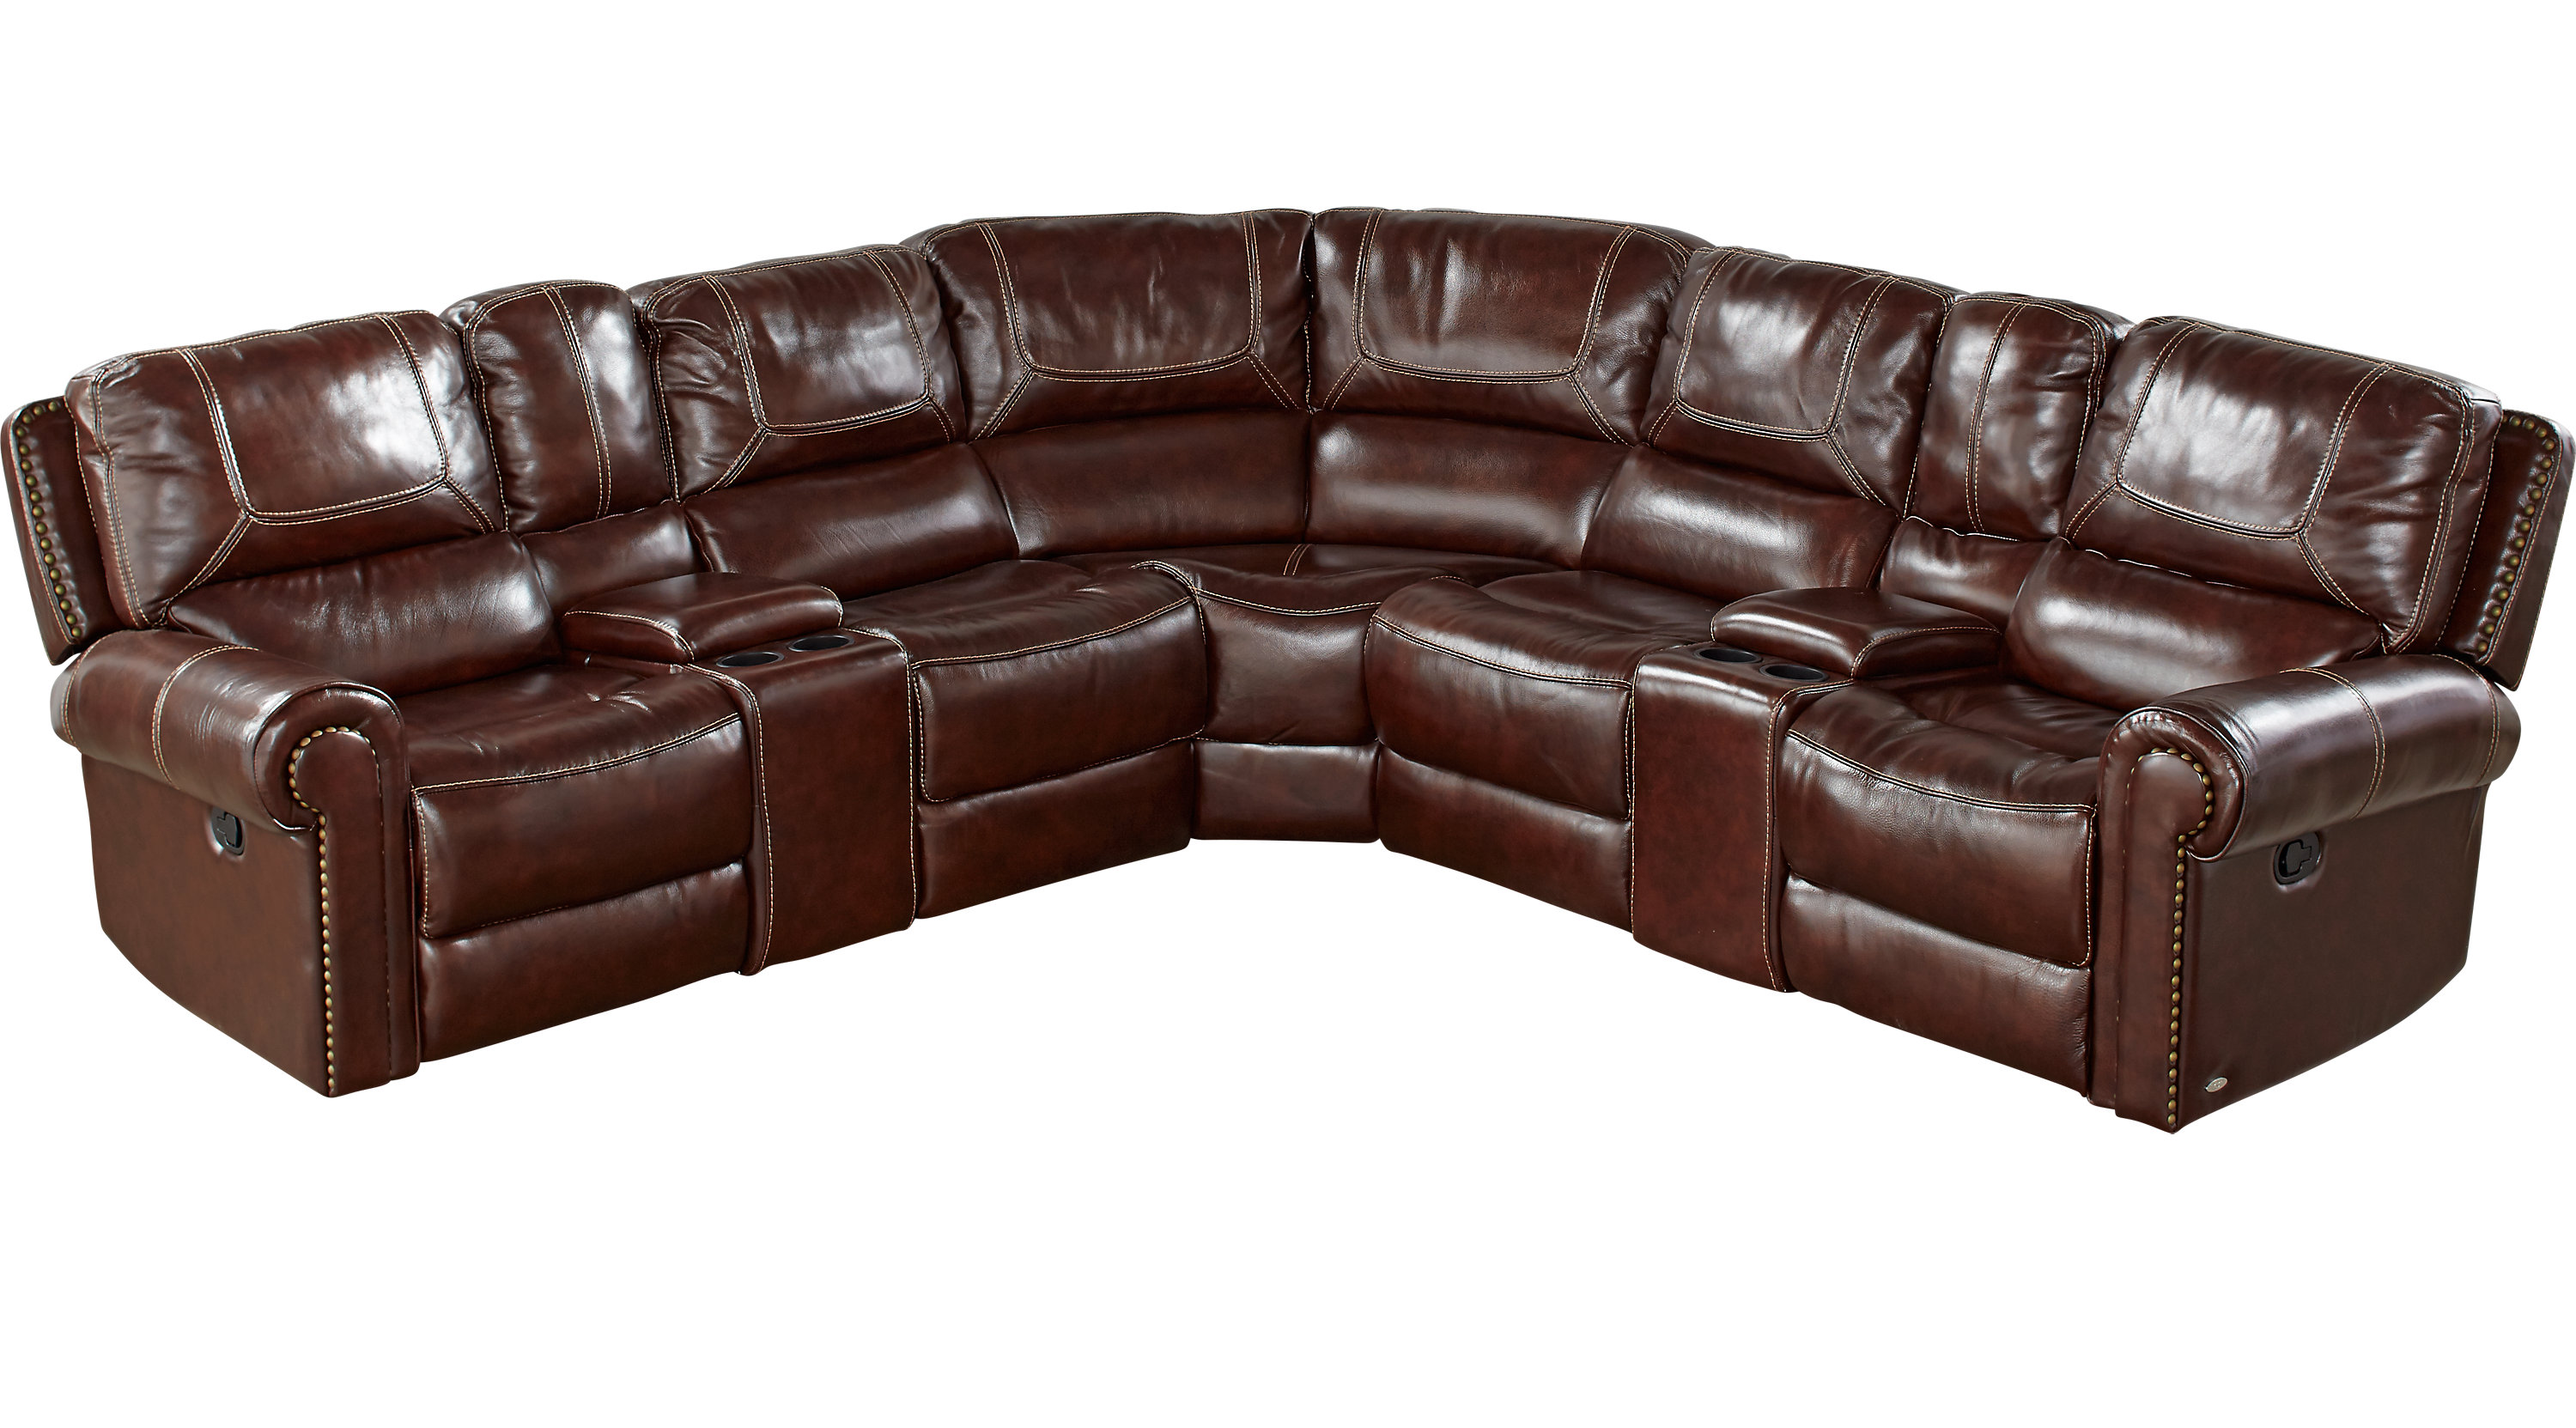 258800 Campania Brown Leather 7 Pc Reclining Sectional